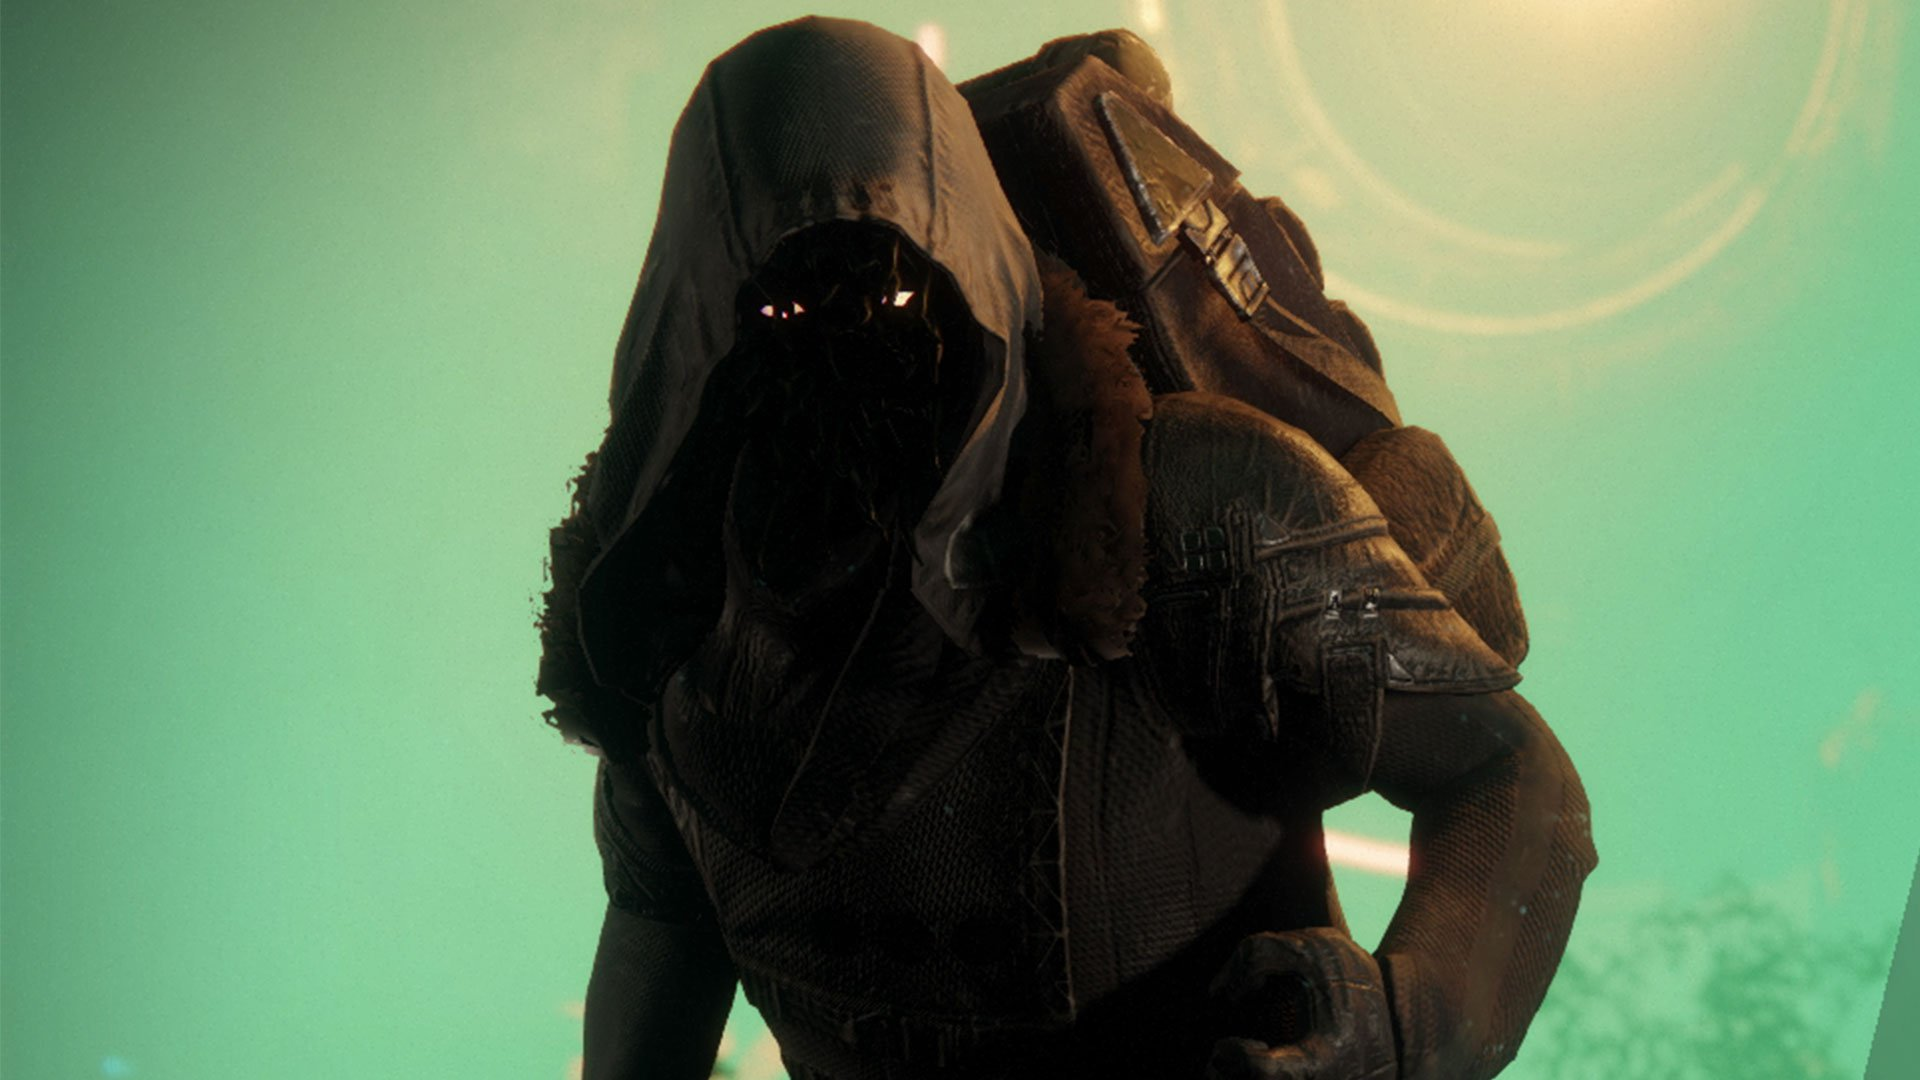 Where to find Xur in Destiny 2 from July 12 through July 16.